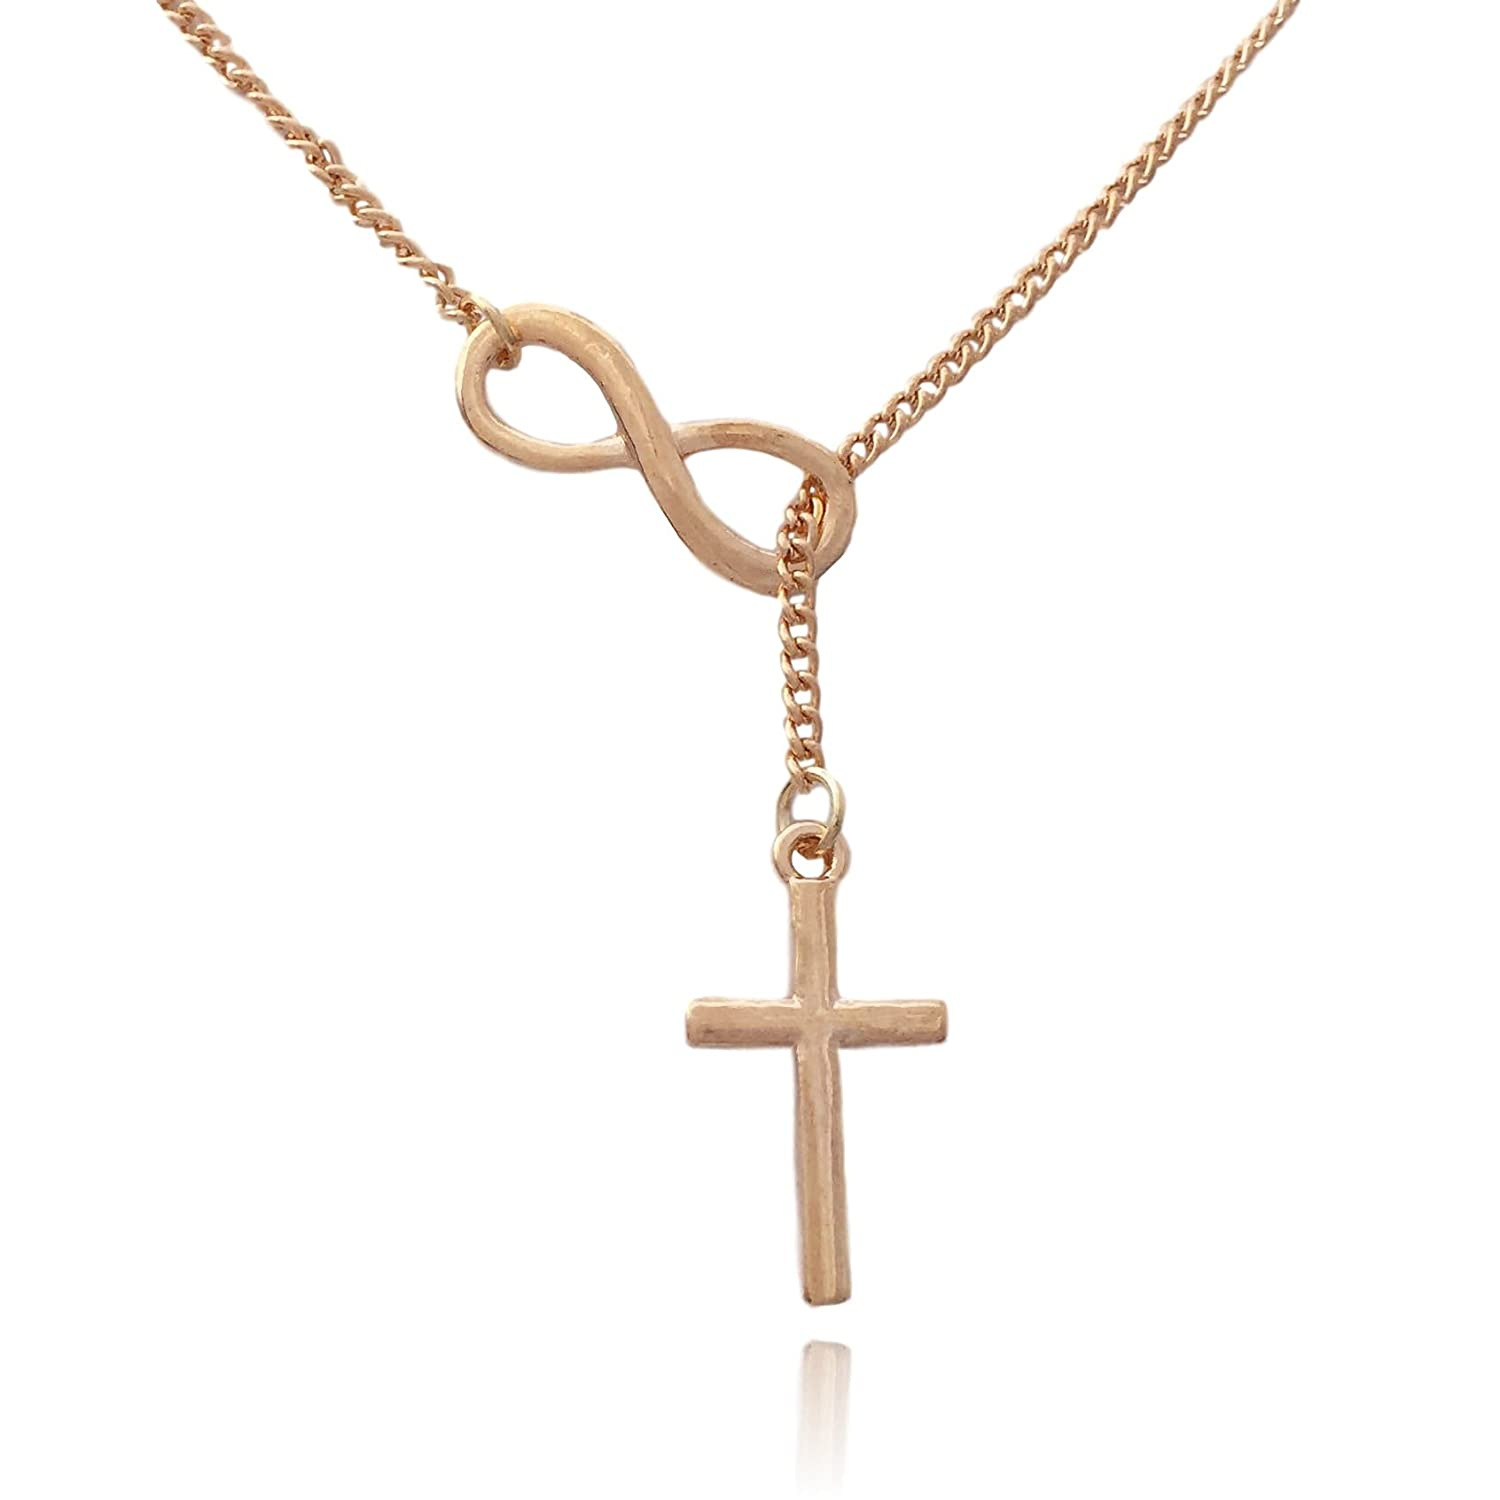 Clayton Jewelry COS (TM) Christian Cross with Infinity Symbol Necklace